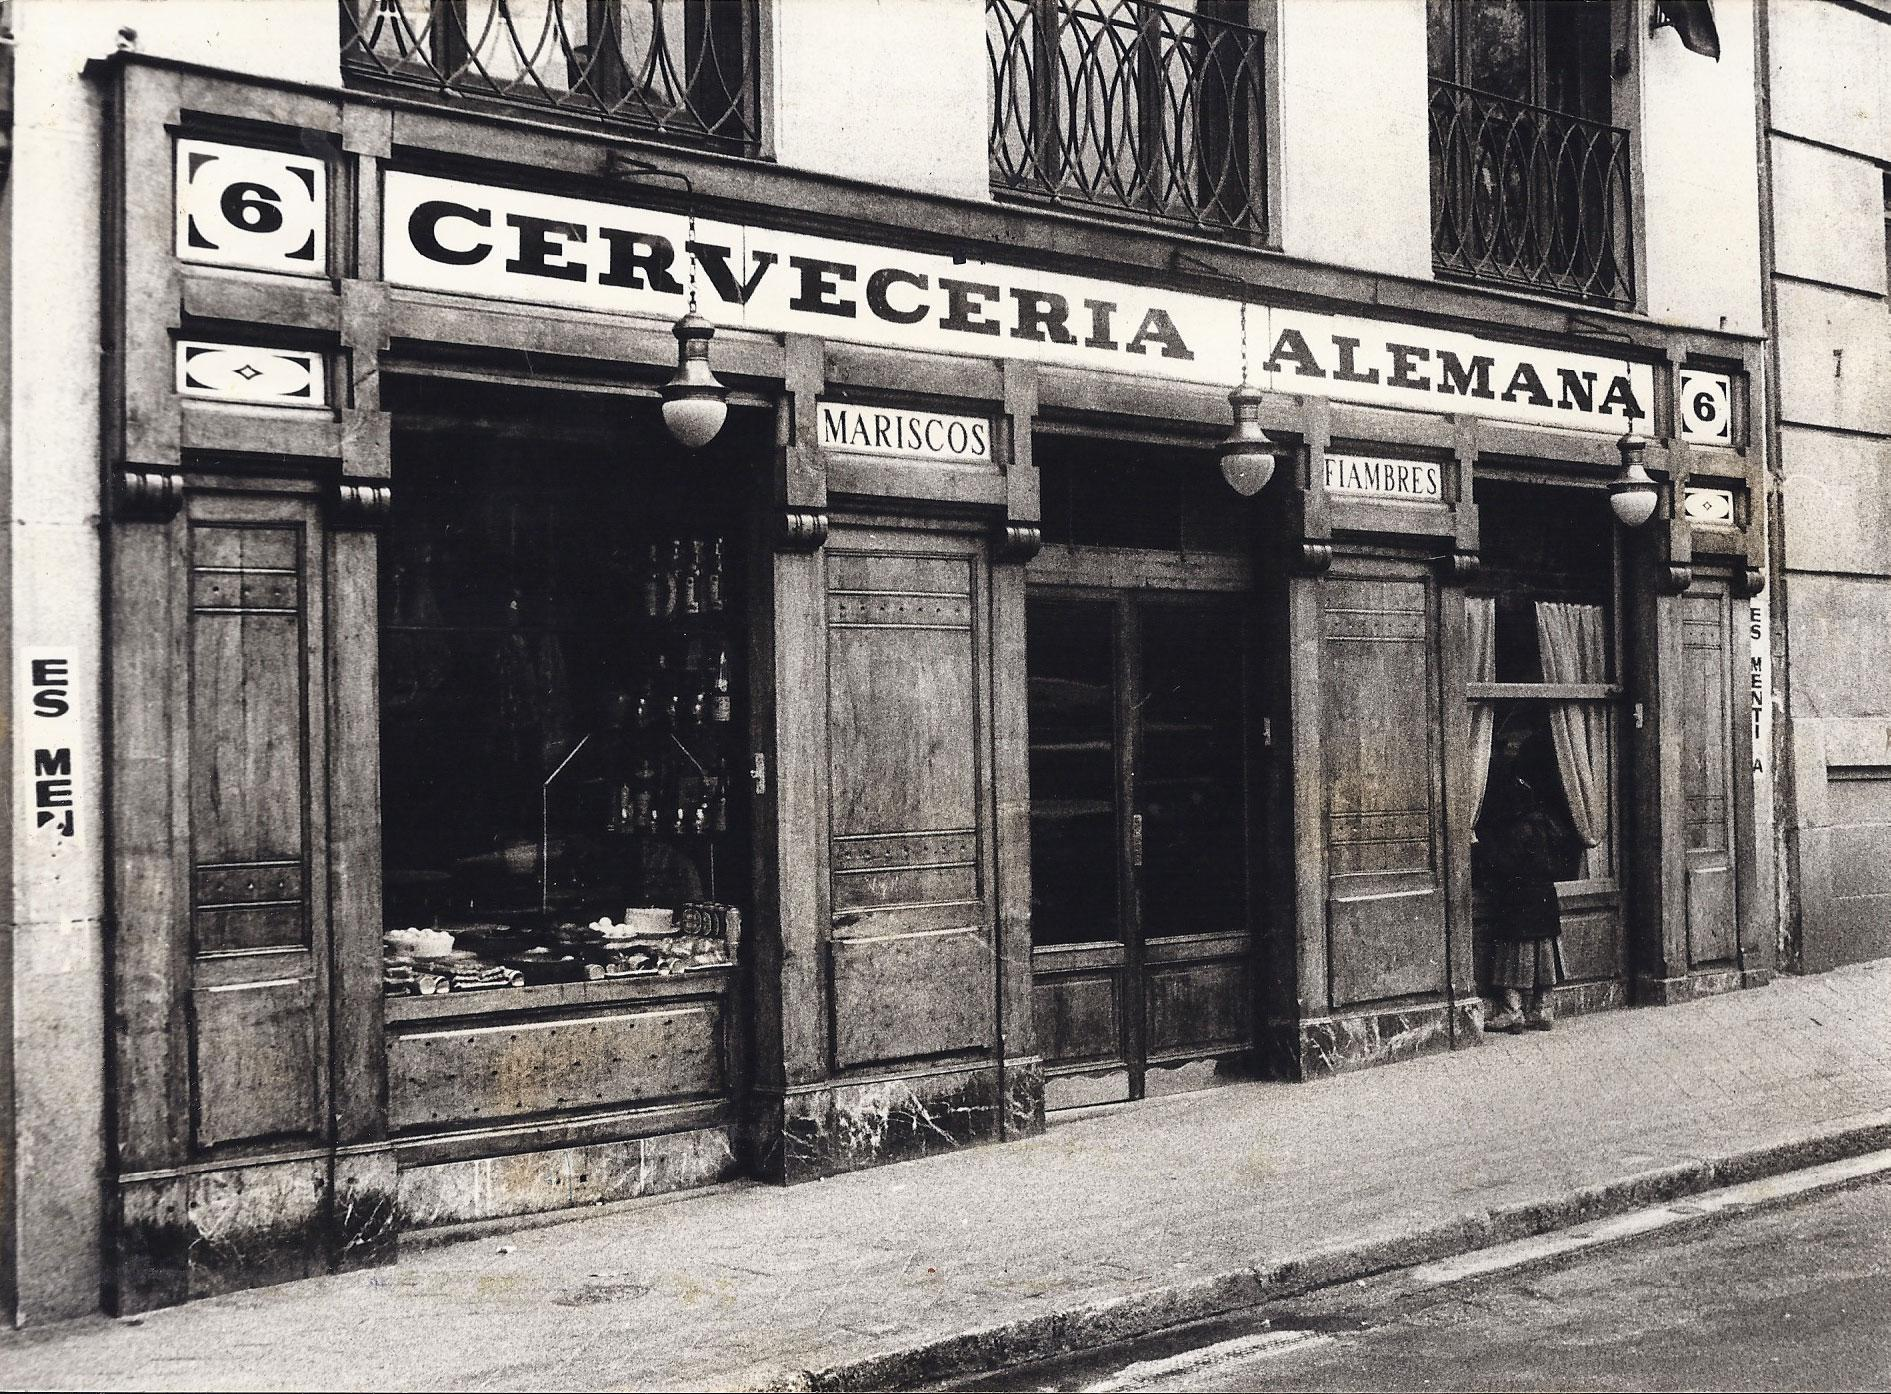 1904, LA ALEMANA OPENS ITS DOORS